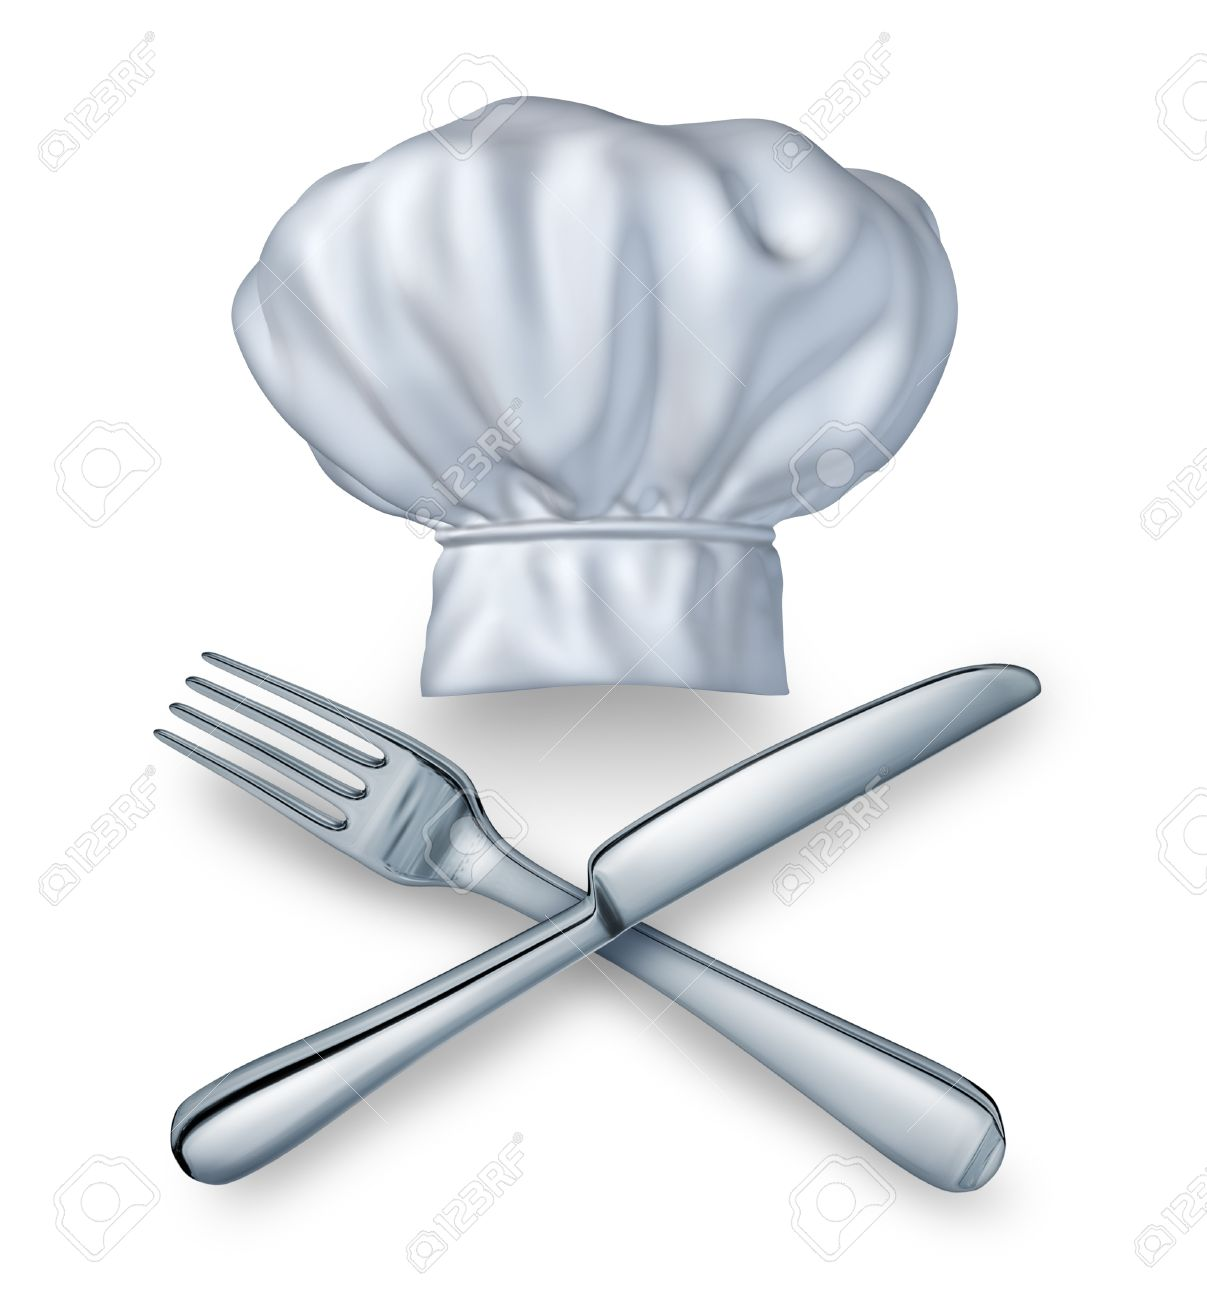 Chef Hat With A Knife And Fork Silverwear As A Food And Drink